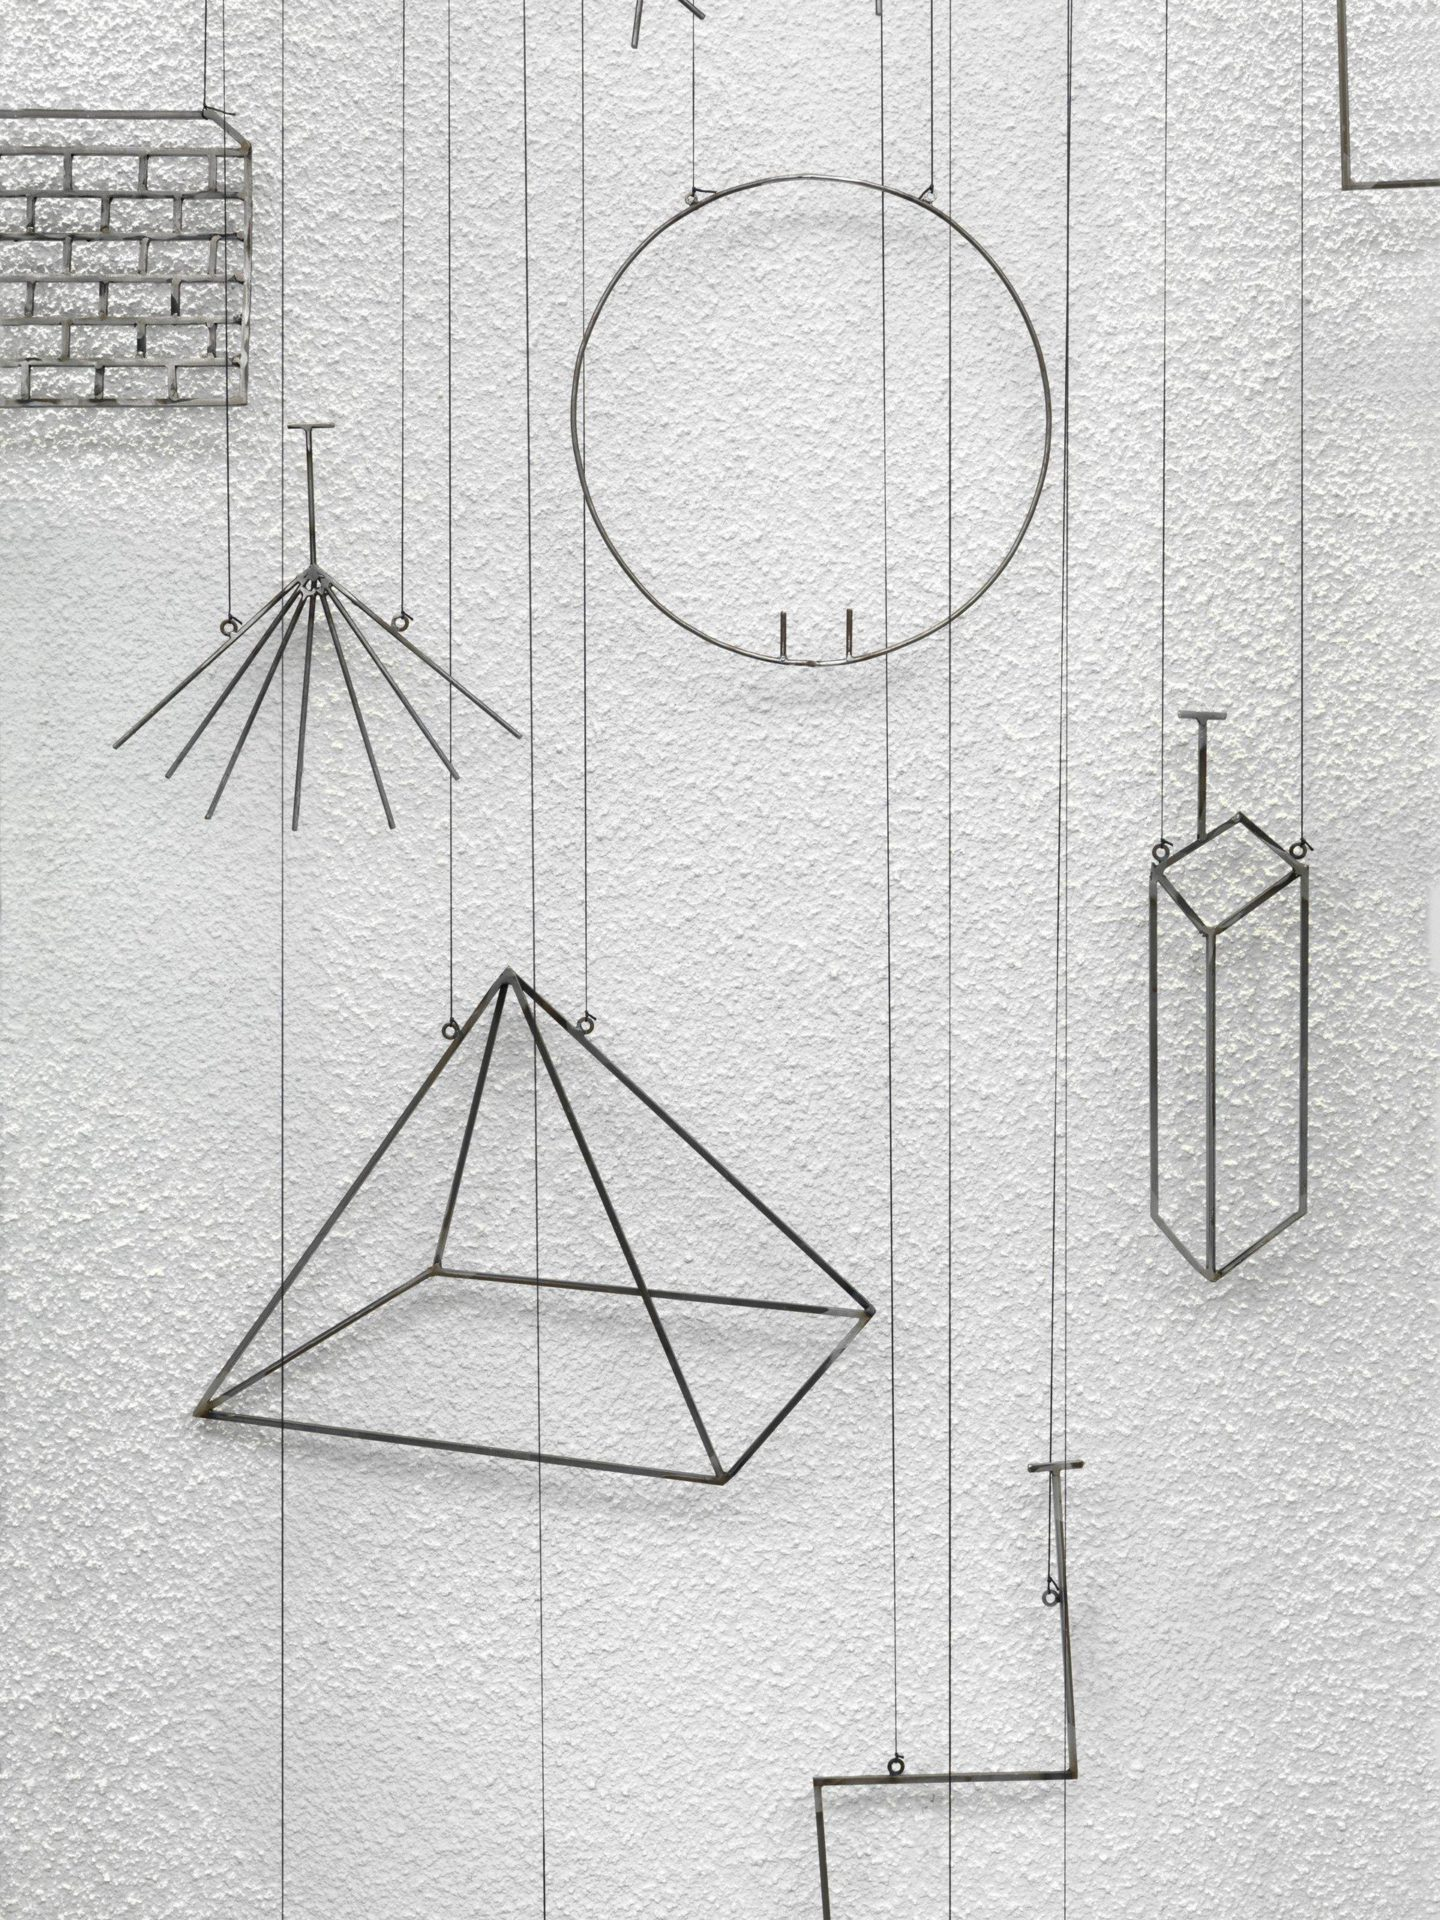 Eva Kot'átková, Psychological Theatre, Head of Karel, A Boy, Who Communicates through Signs and Simple Drawings, 2014, Detail